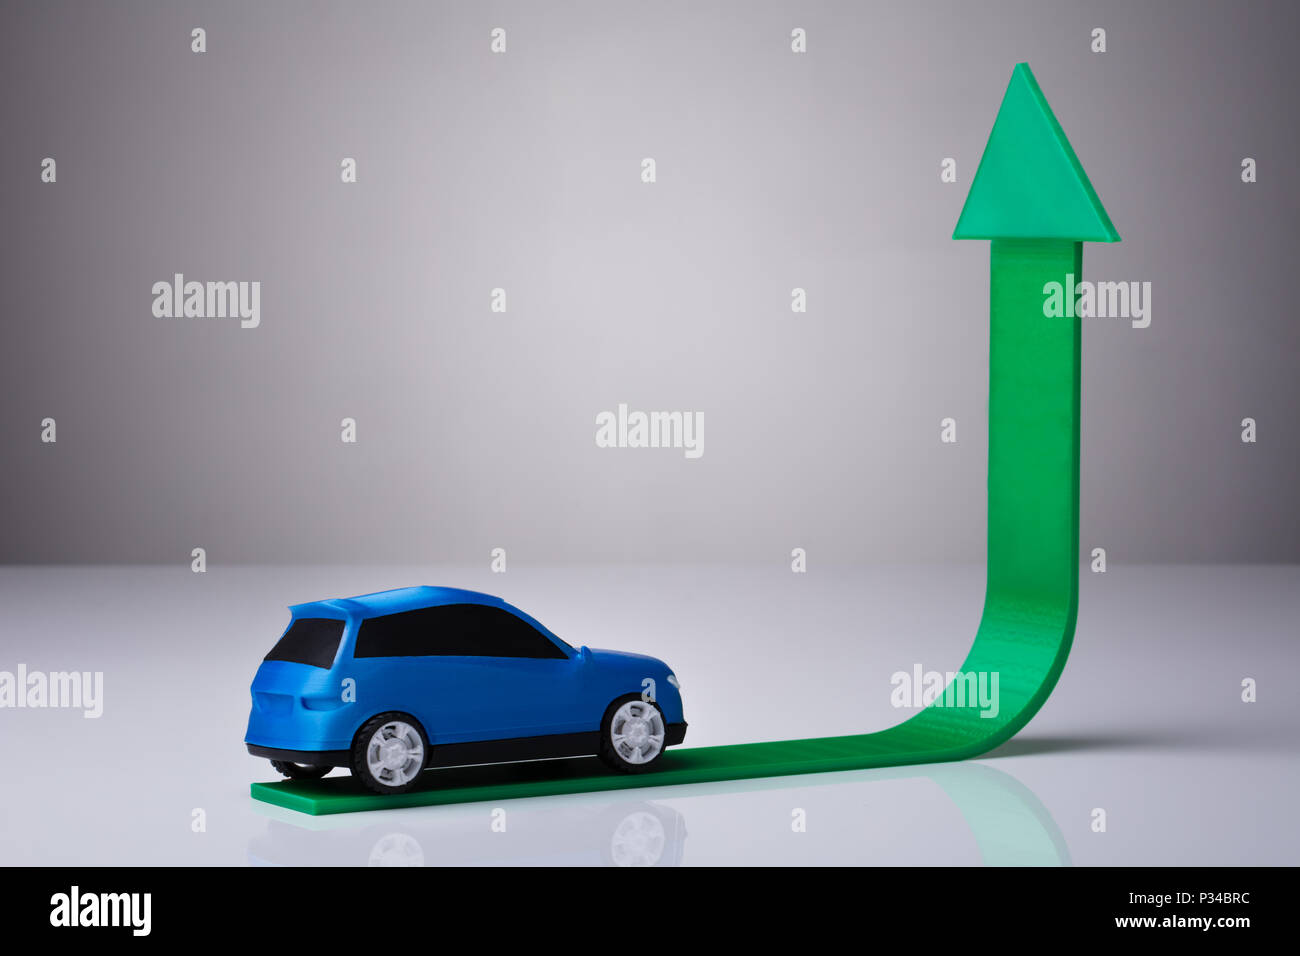 Blue Car Driving On Green Upward Arrow Against Gray Background - Stock Image